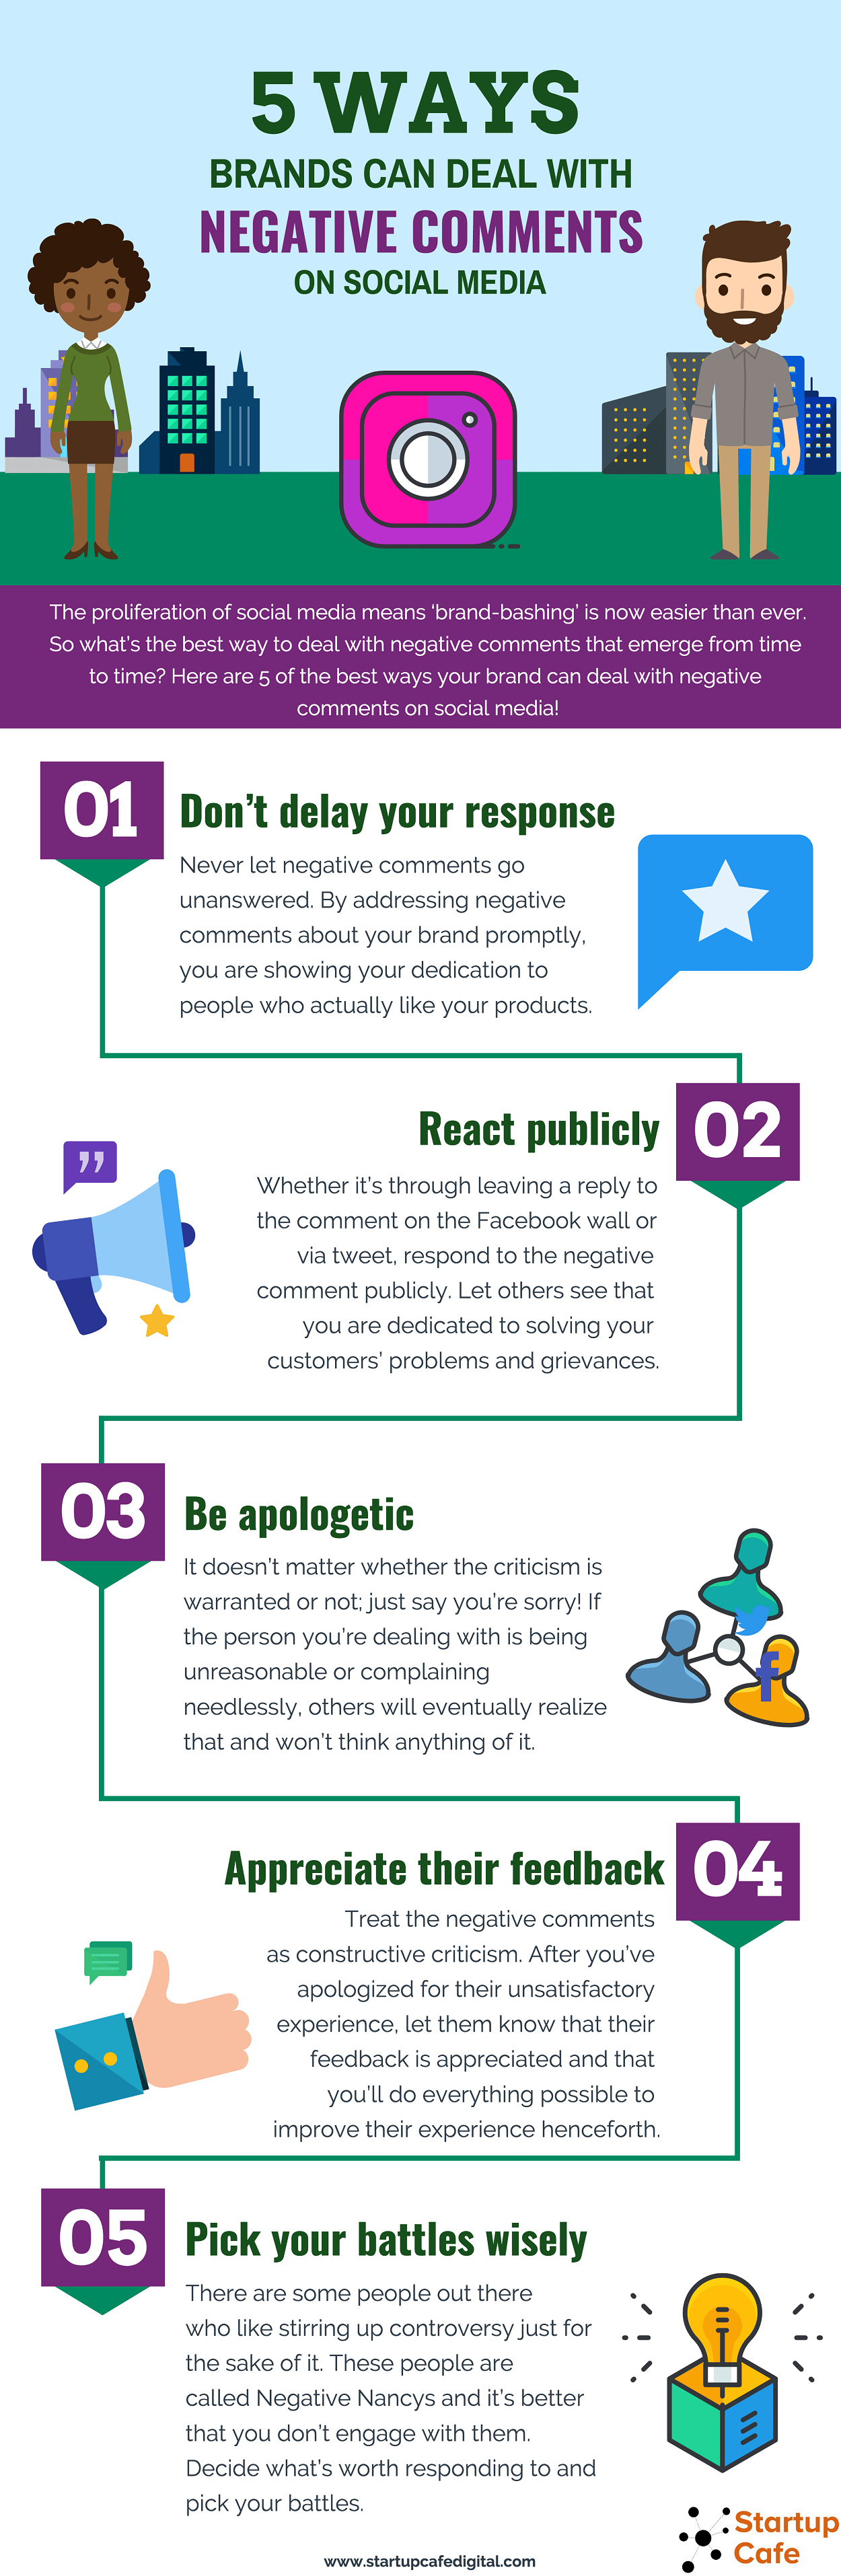 5 Ways Brands Can Deal With Negative Comments on Social Media #infographic